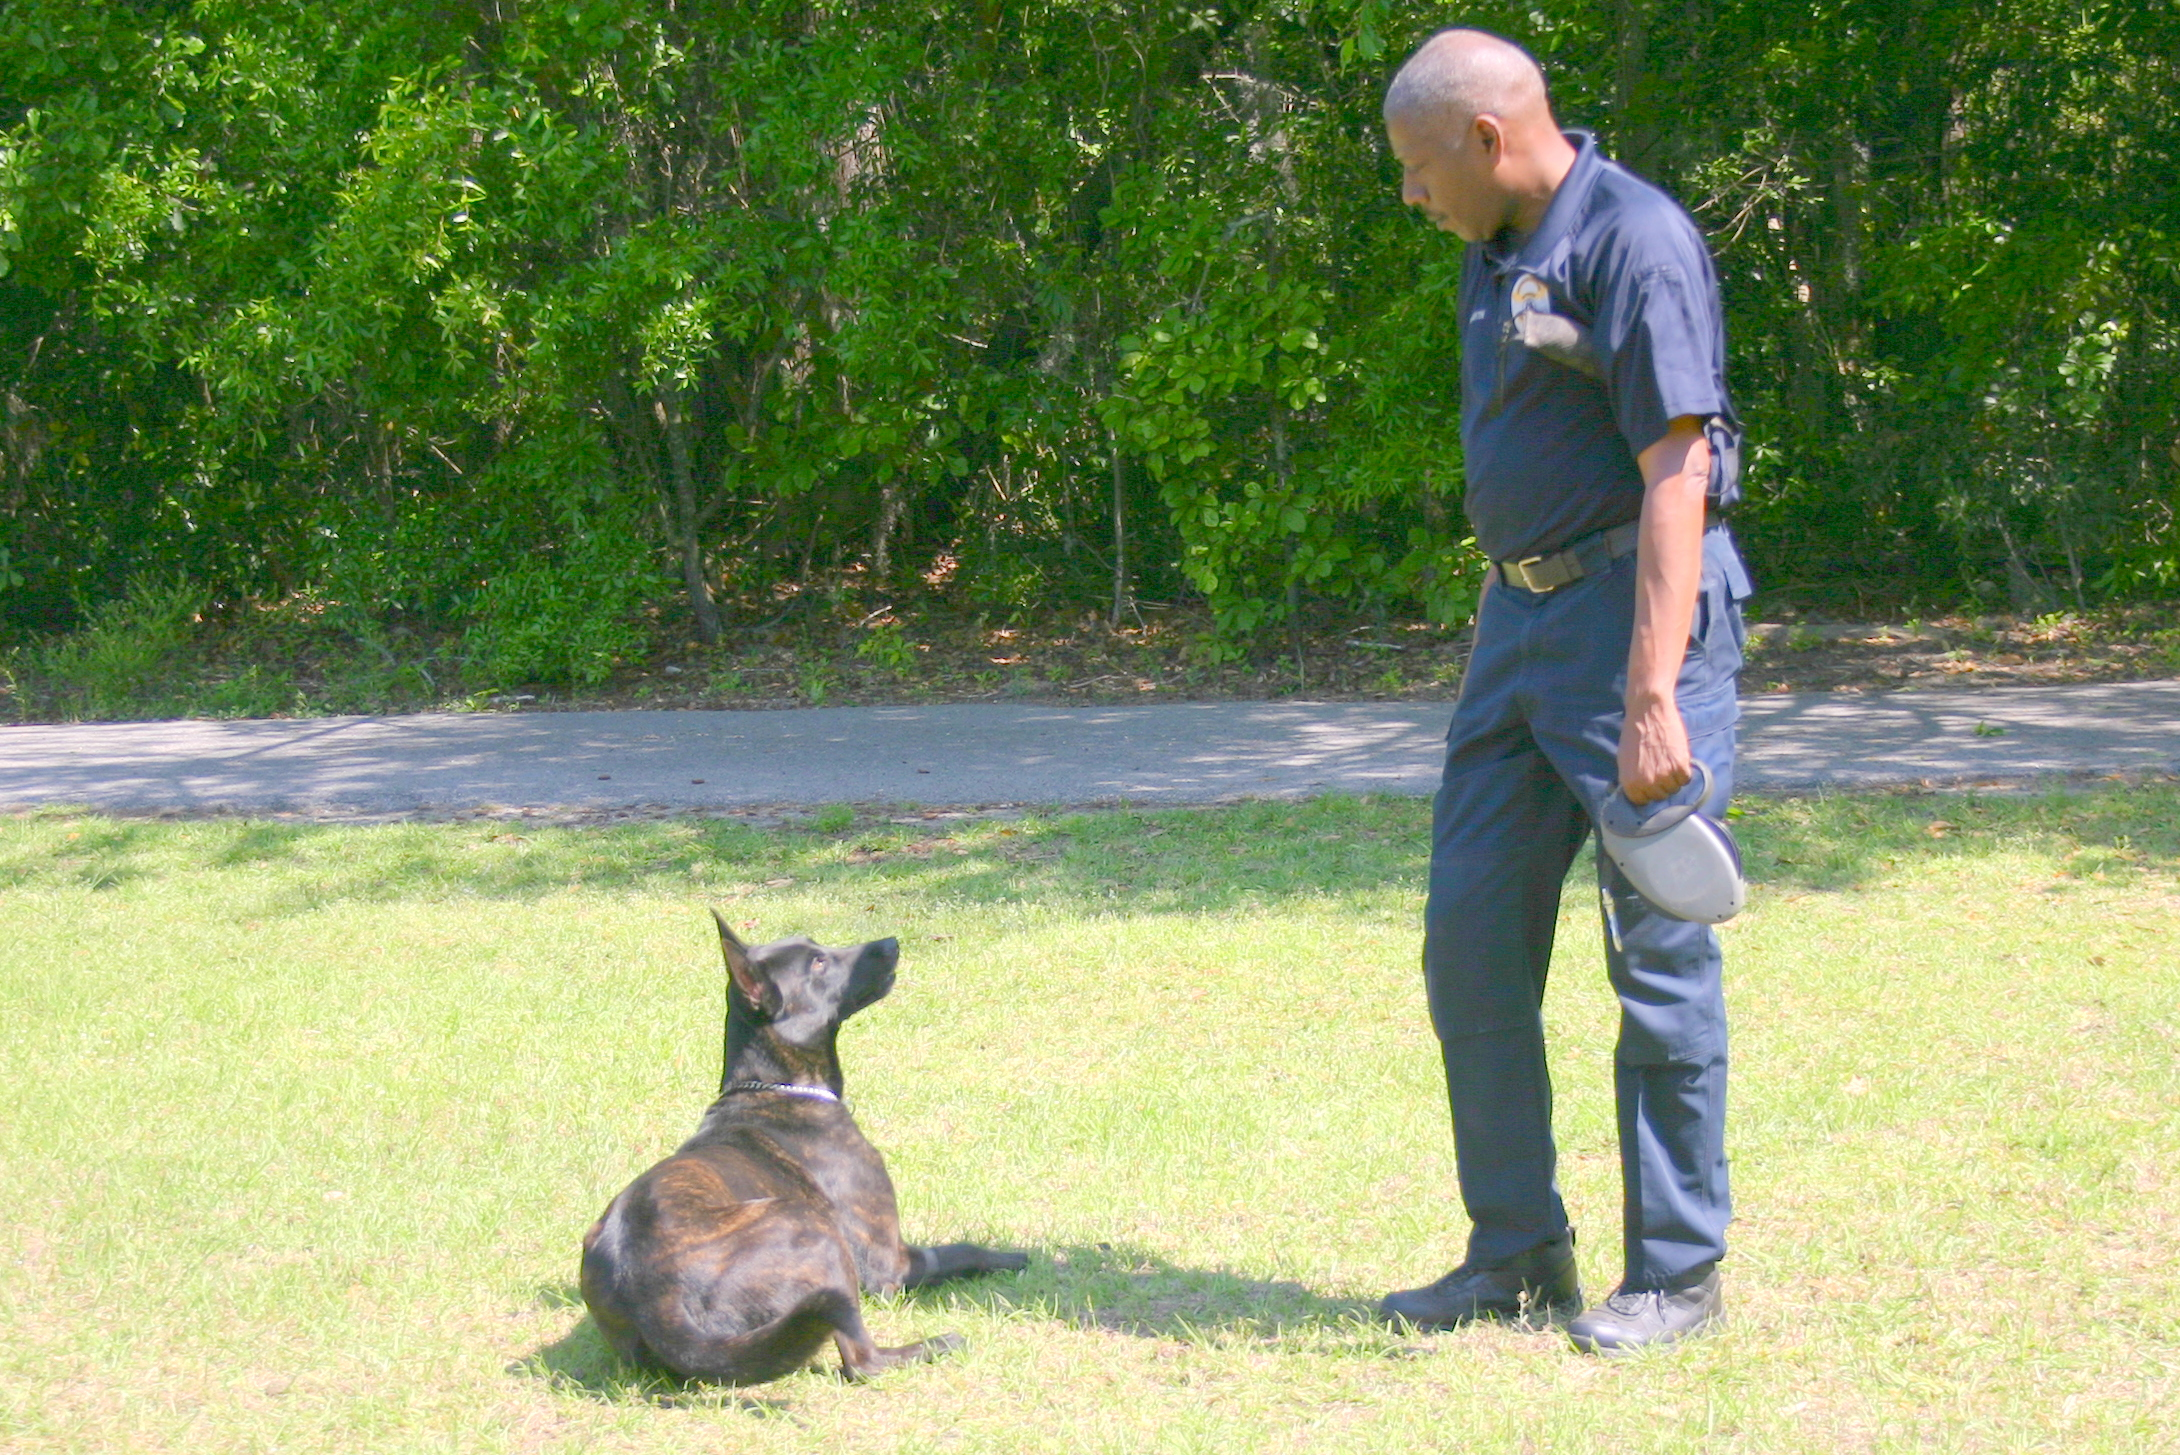 Ziggy signals to his partner Ofc. Mike Drayton that he has found a shell casing.